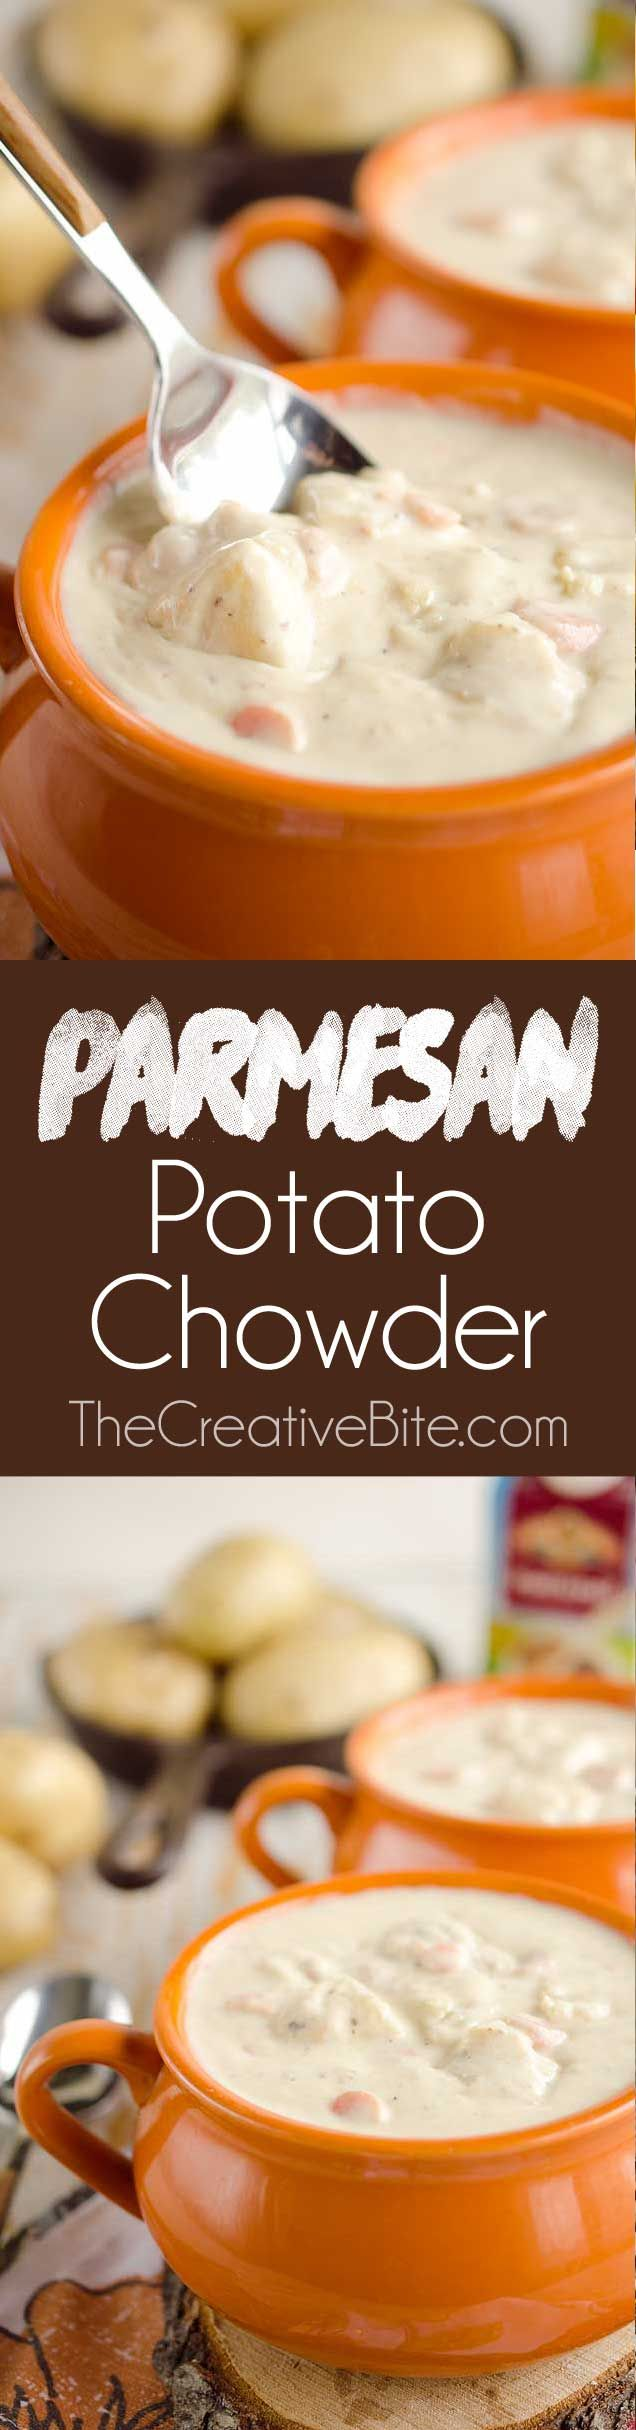 100+ Chowder Recipes on Pinterest | Creamy soup recipes ...